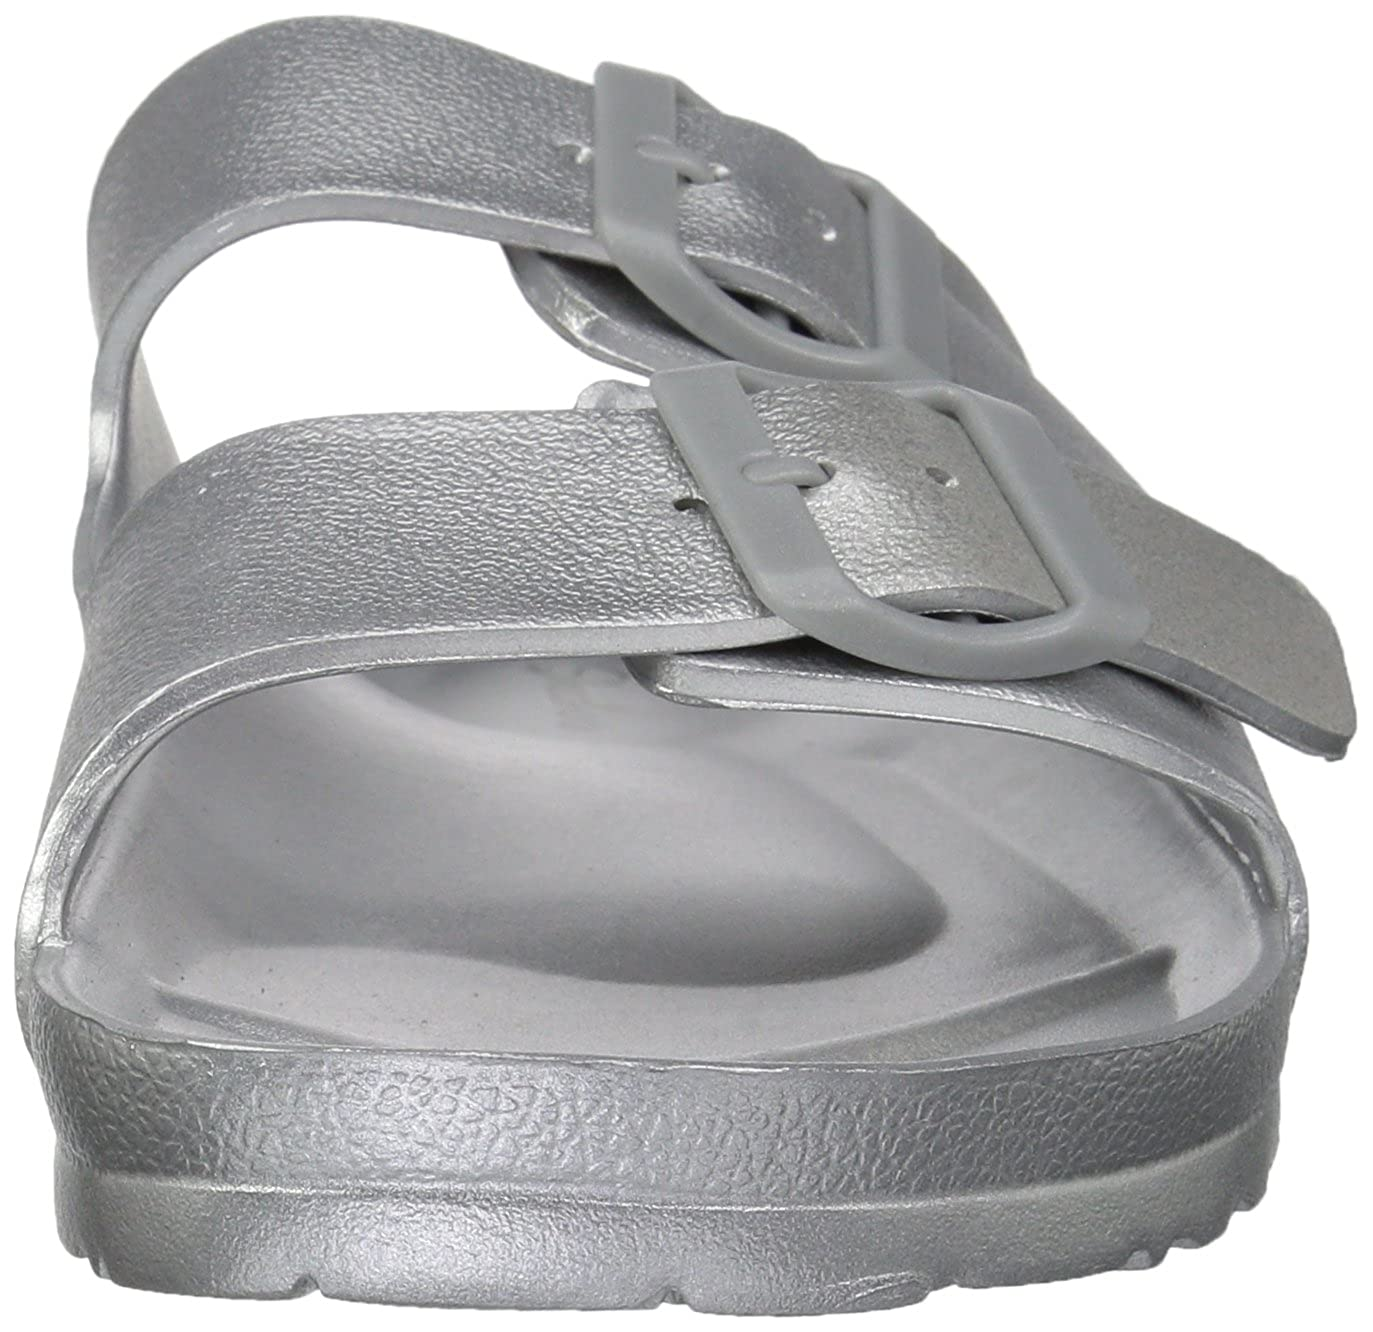 fef15e944e1d Skechers Womens Cali Breeze - Glow Power - Two Band Slide Sandal Slide  Sandal  Amazon.ca  Shoes   Handbags